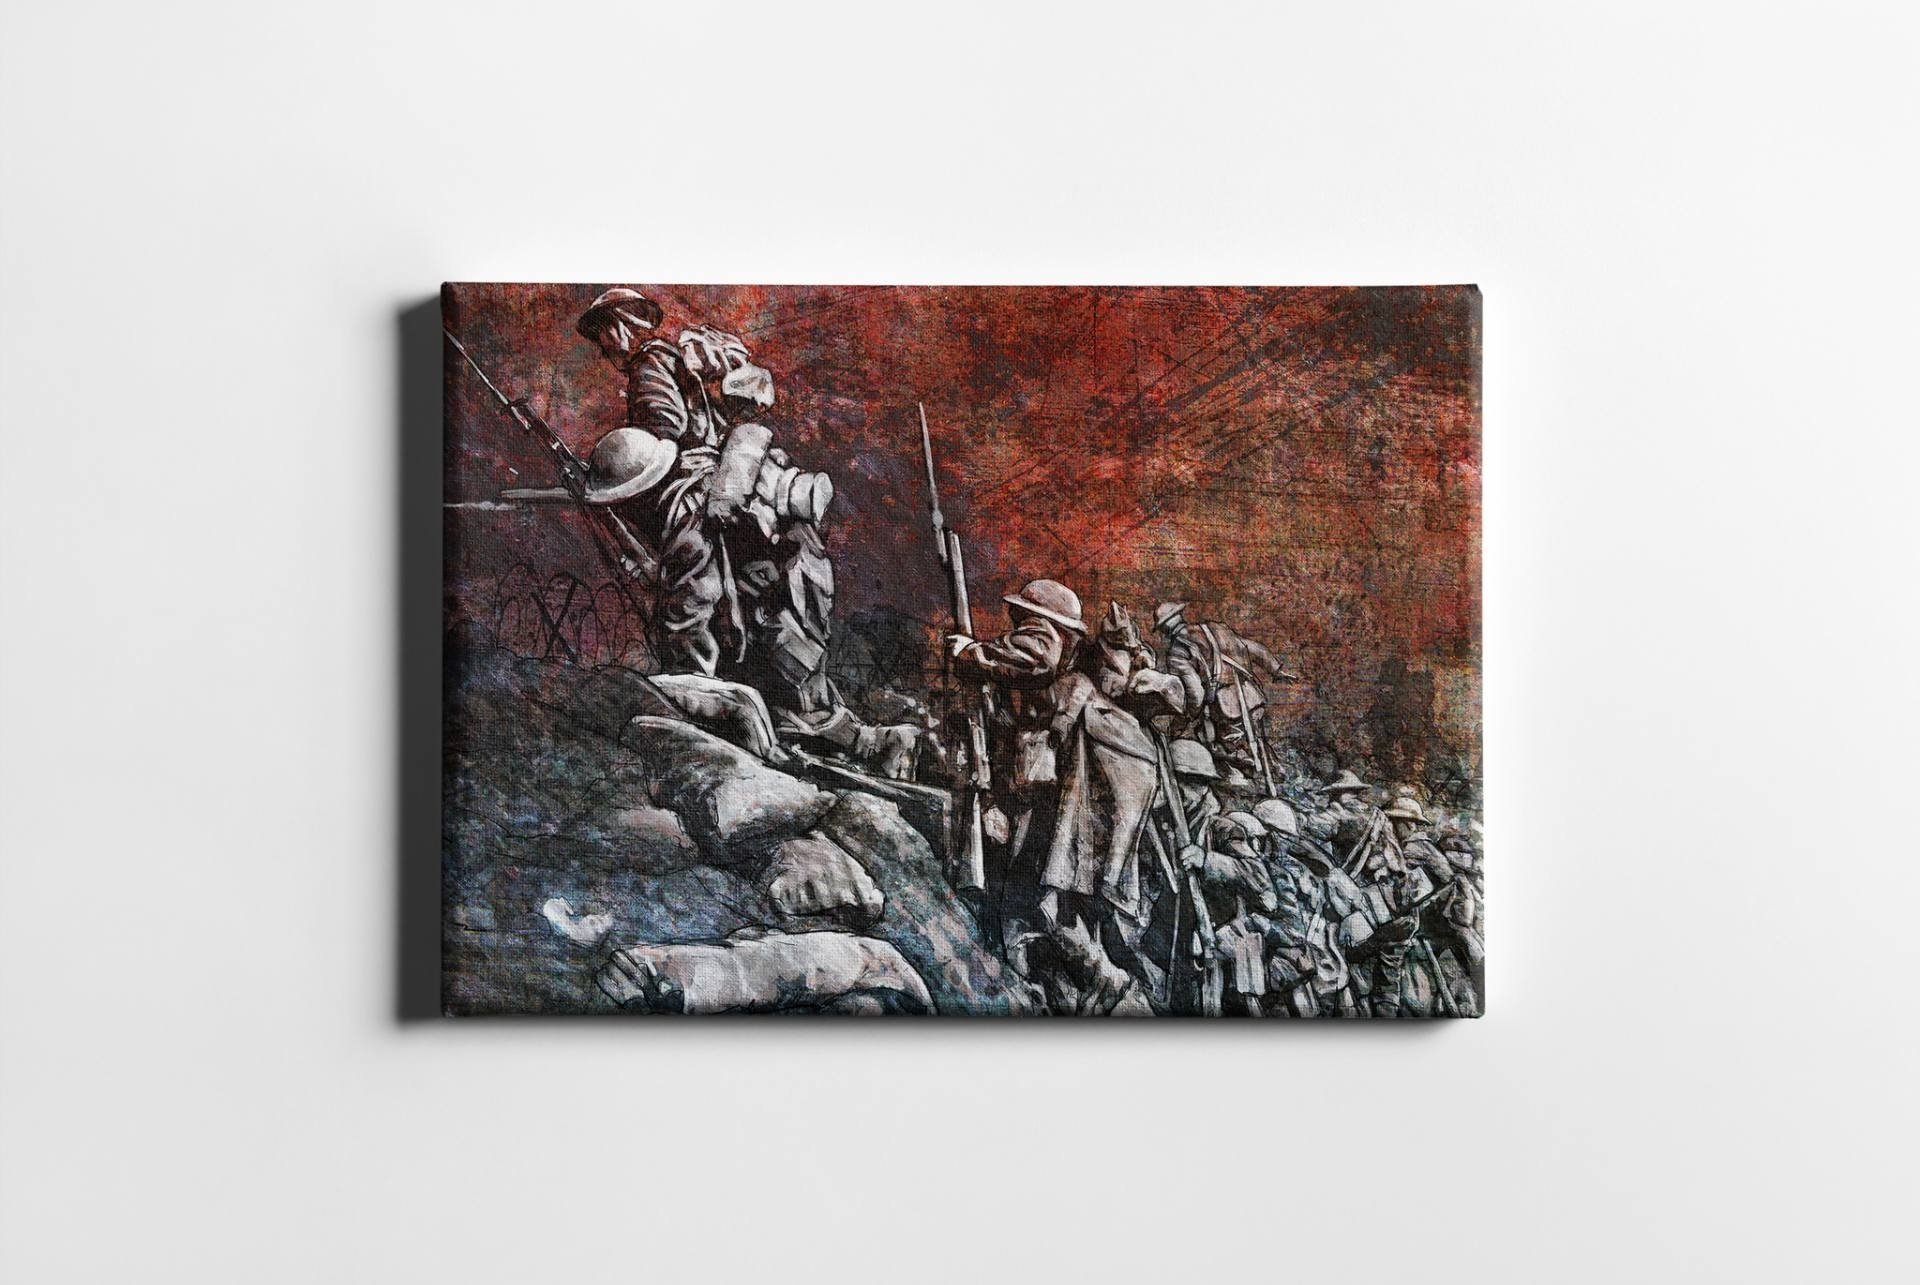 Saatchi Art: Remembrance Day Art Original Limited Edition Canvas Within Most Up To Date Limited Edition Canvas Wall Art (View 14 of 15)